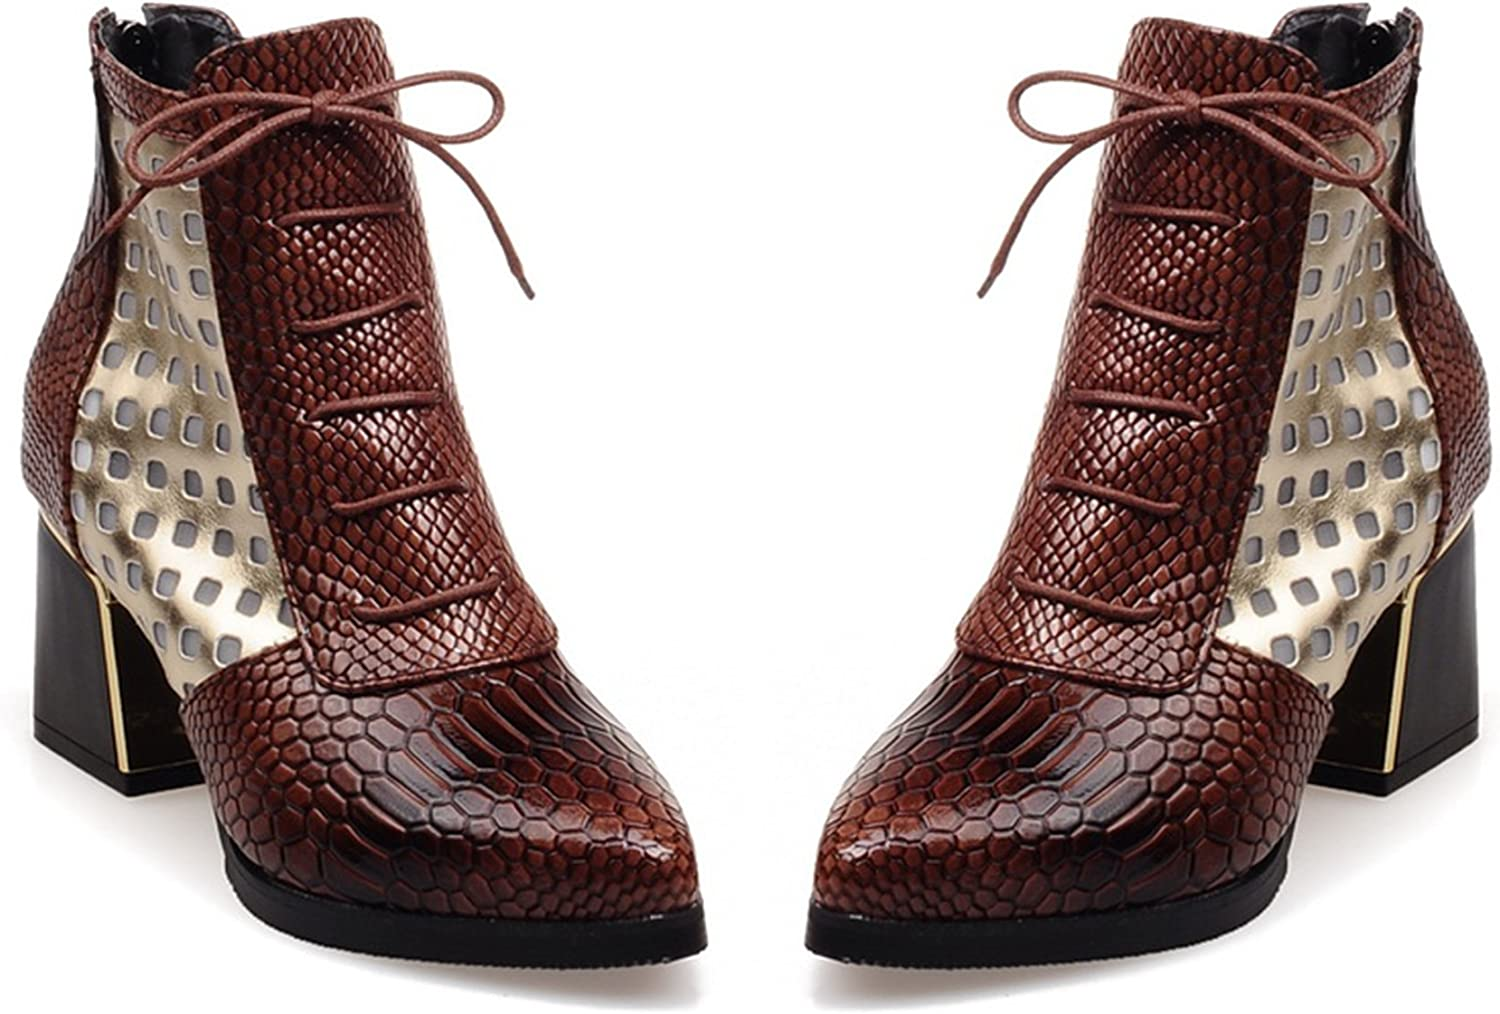 CHENSIR9 Ankle Boot Snake Print Cross Tie Hoof High Heels Short Boots Pointed Toe Spring Boots shoes